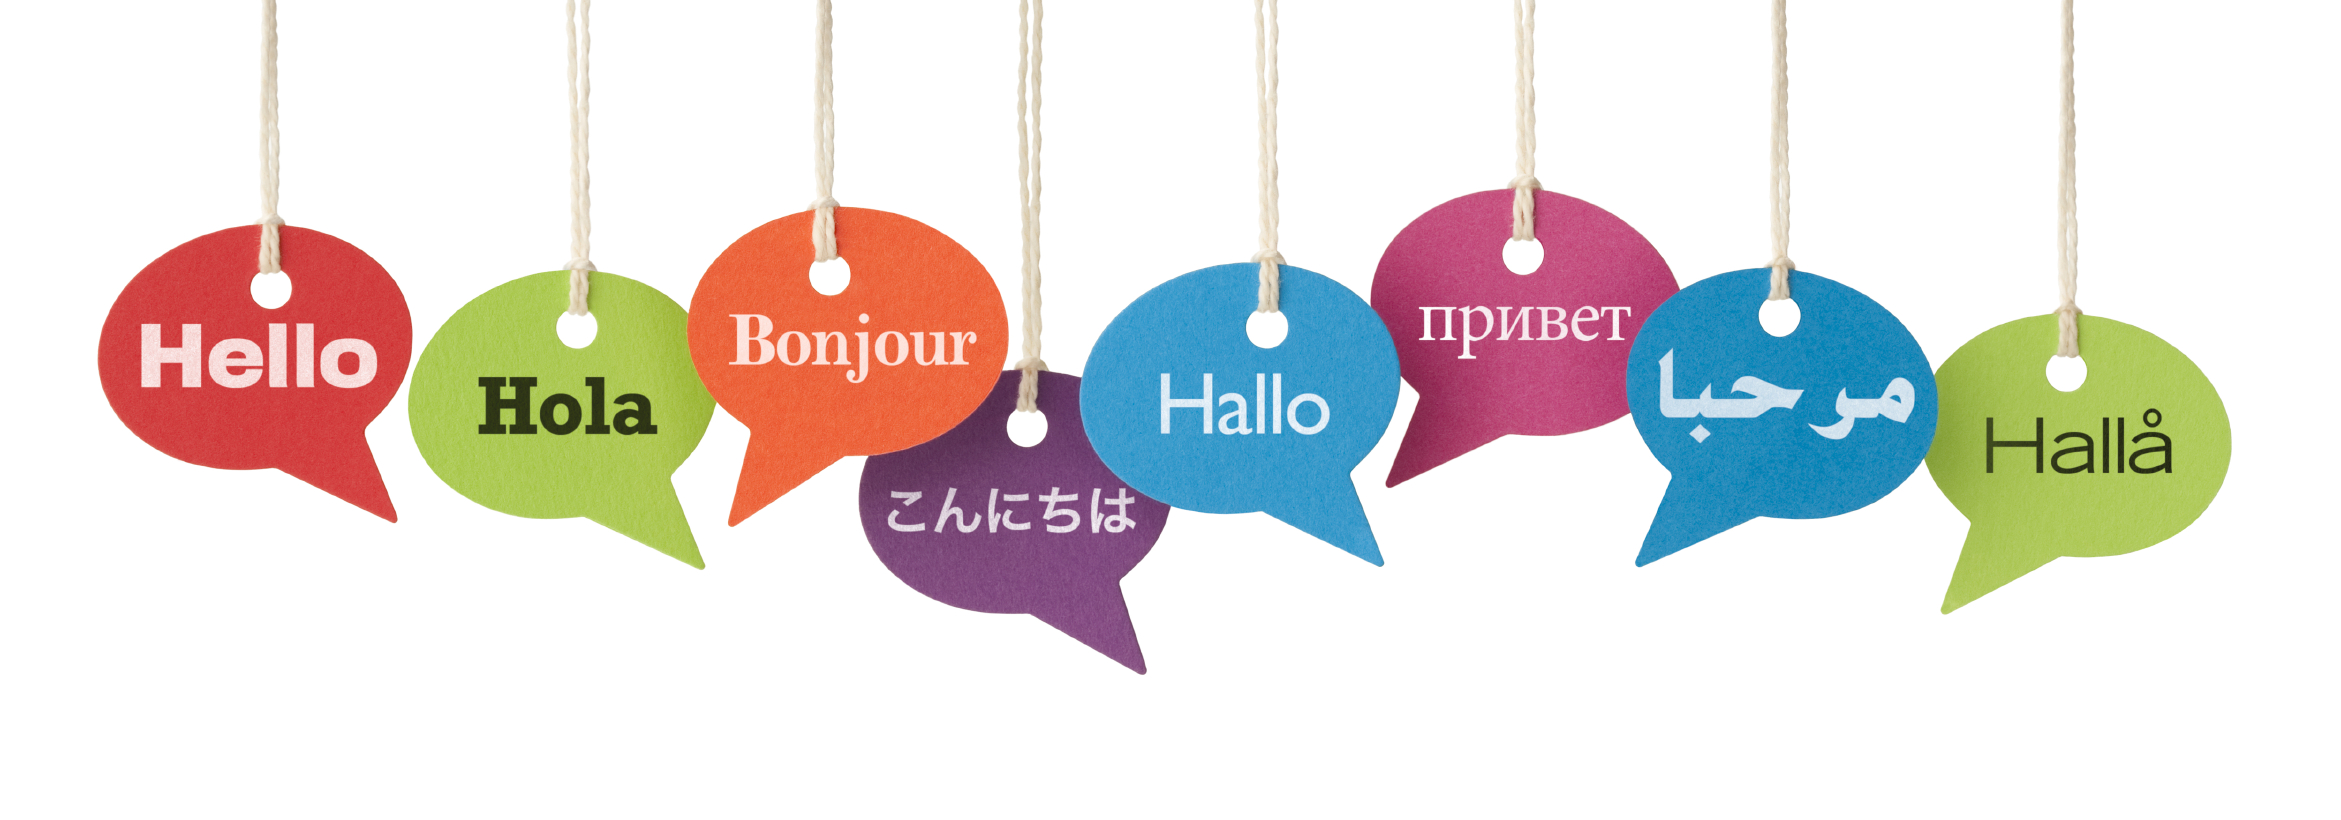 what are the advantages of speaking a second language Benefits of speaking more than one language improves executive function, which includes the abilities to control thoughts and behaviors like focusing on a goal, ignoring distractions, switching attention and planning for the future.